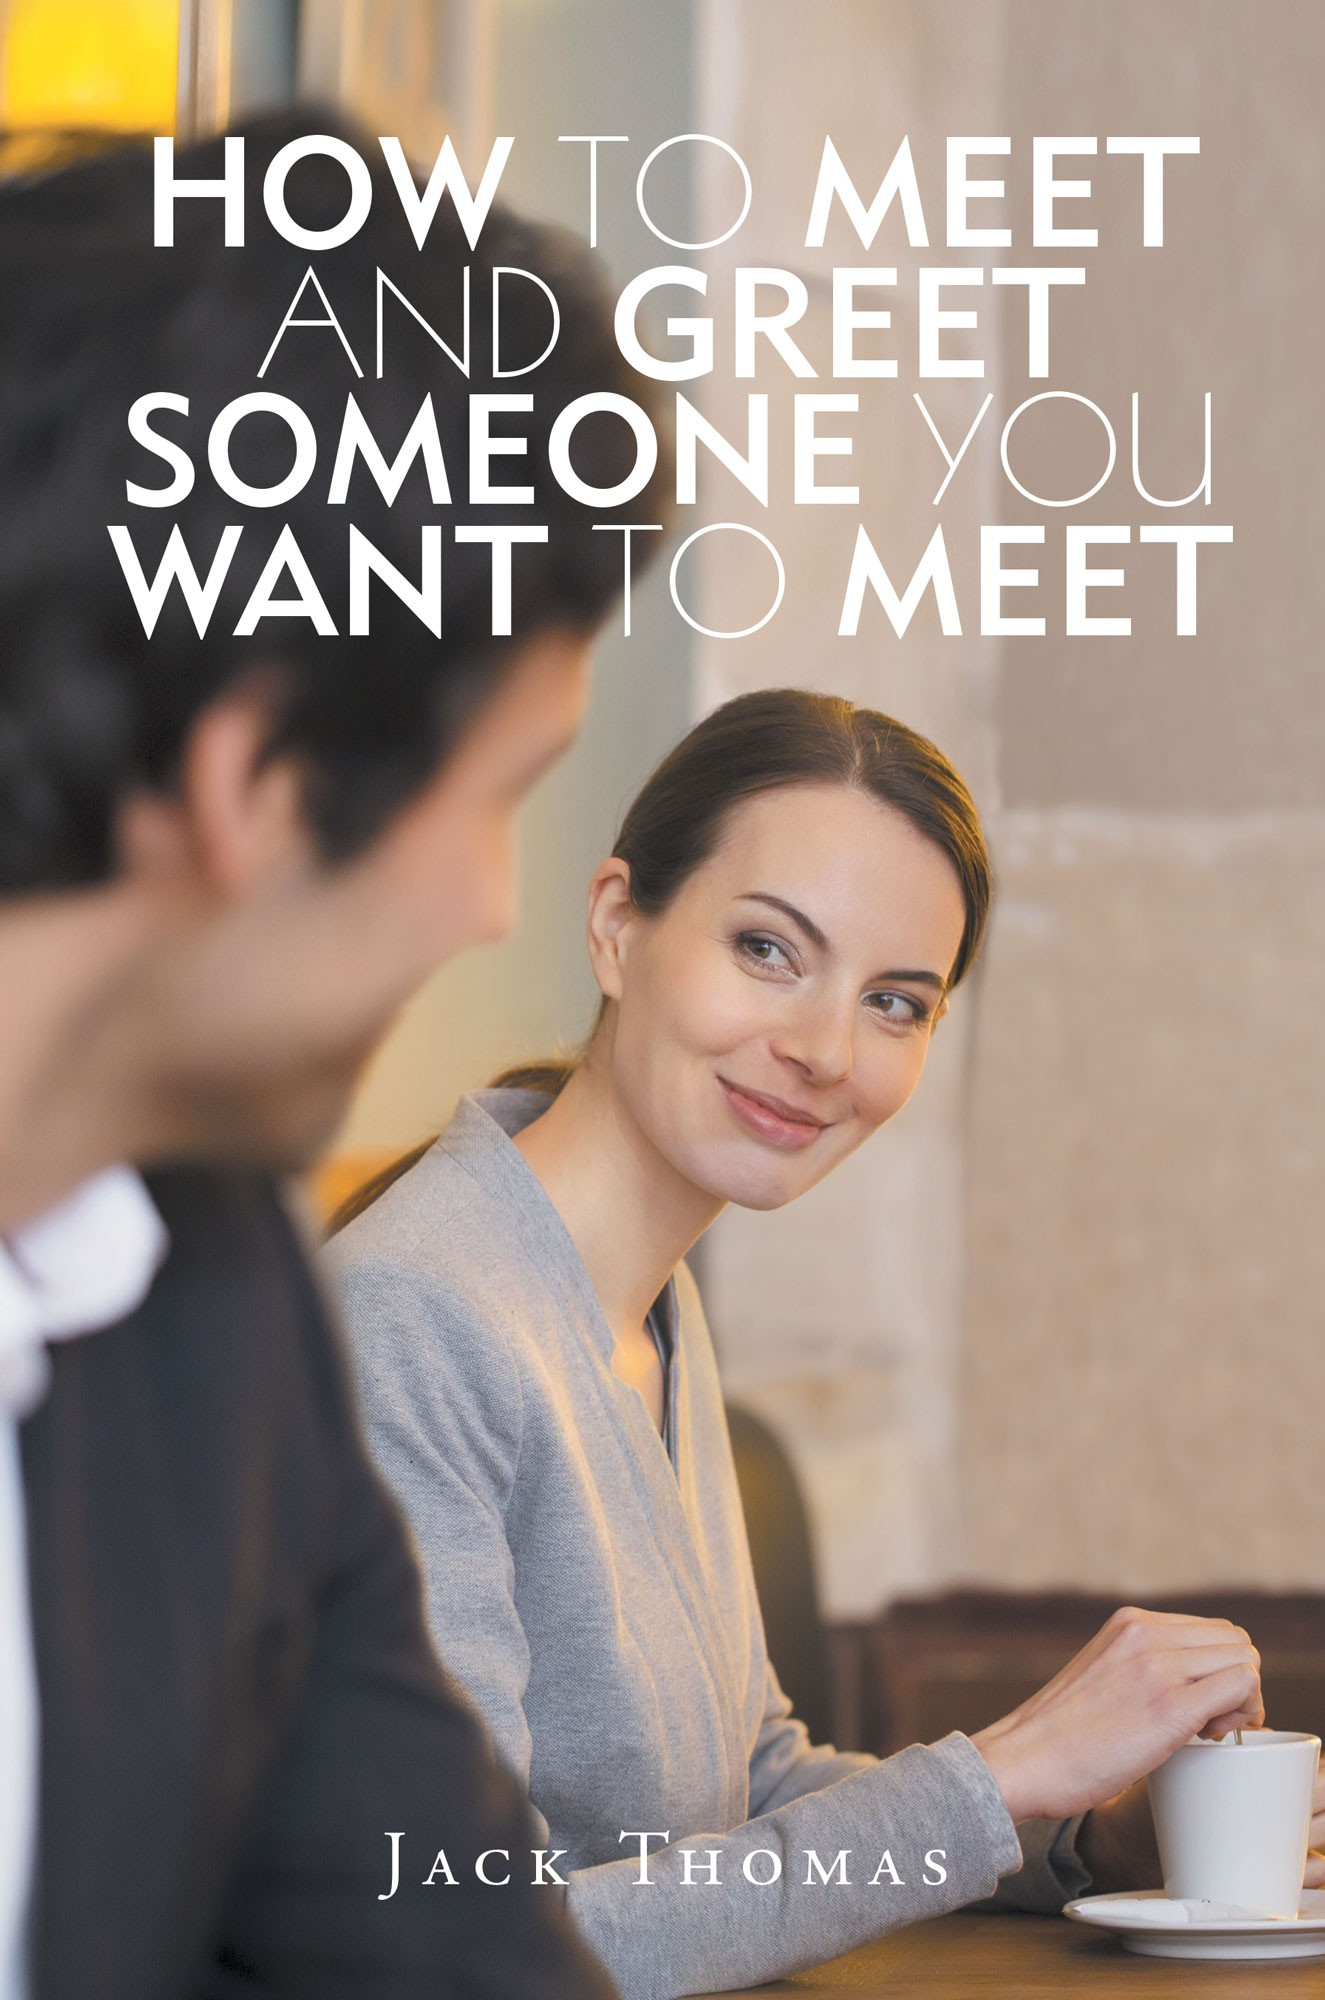 First book how to meet and greet someone you want to meet